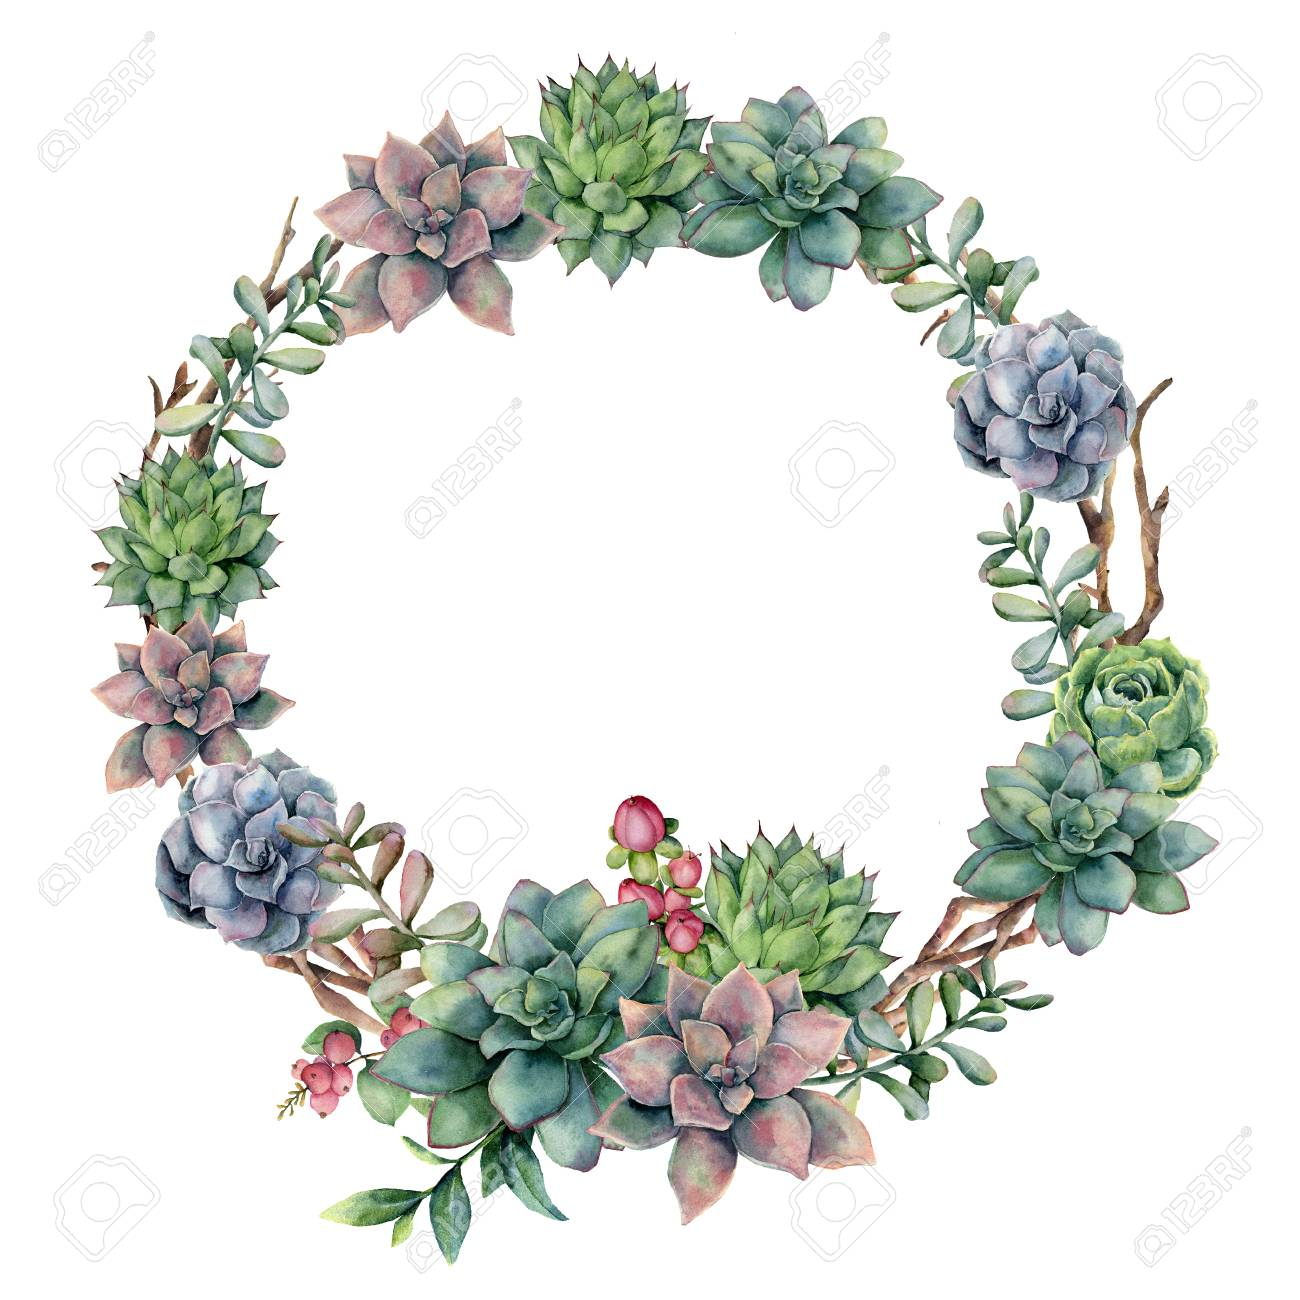 Watercolor Succulent And Berries Wreath Hand Painted Succulent Stock Photo Picture And Royalty Free Image Image 100915143